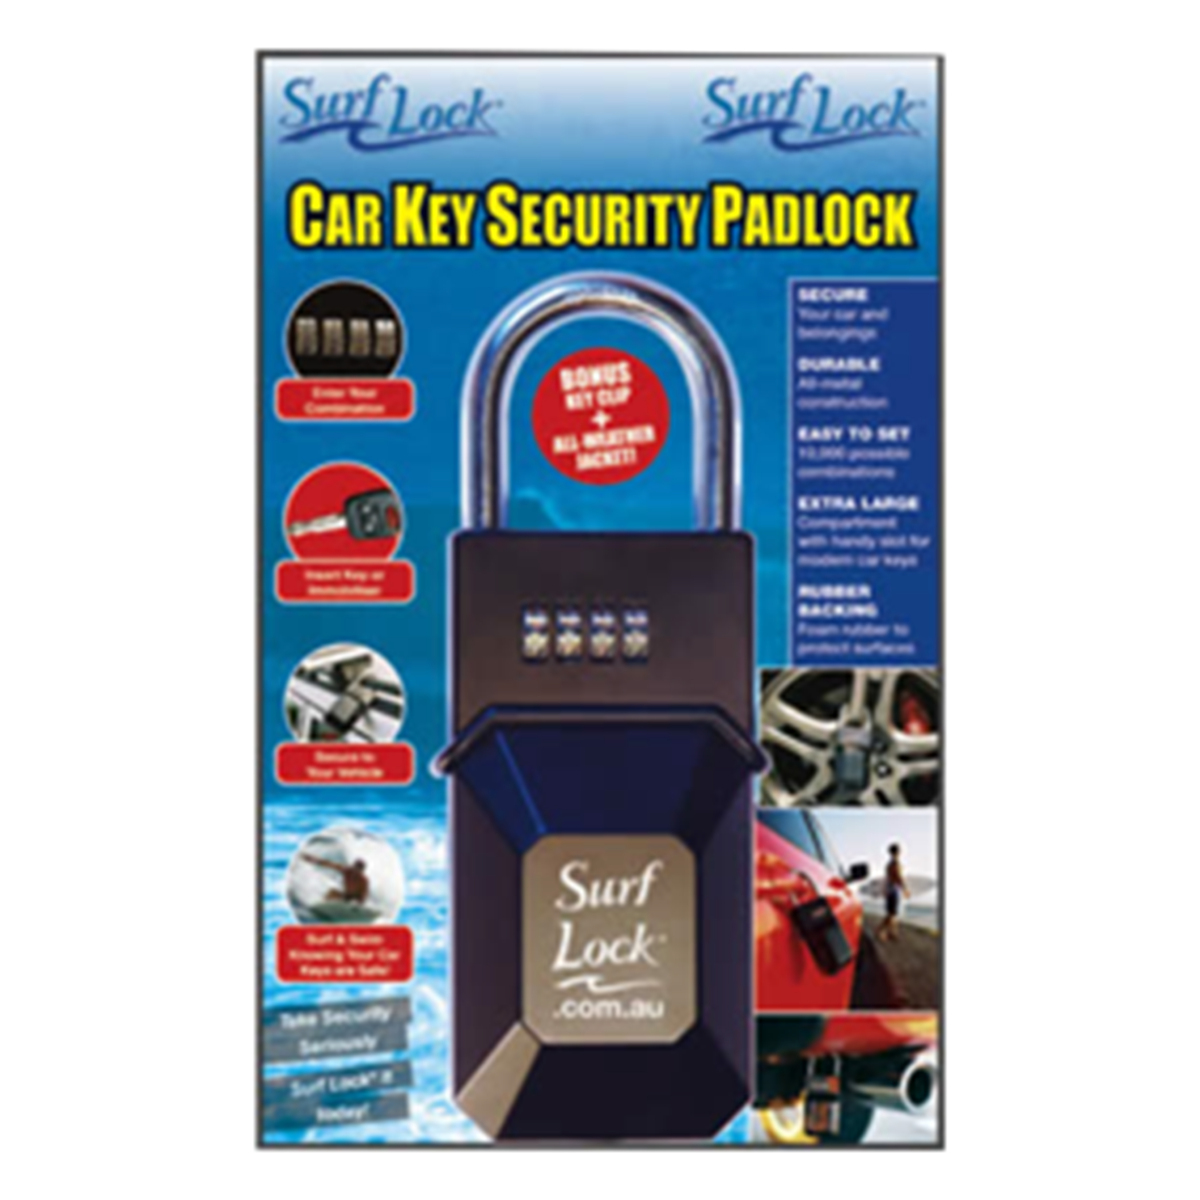 Surf Lock - Car Key Security Padlock